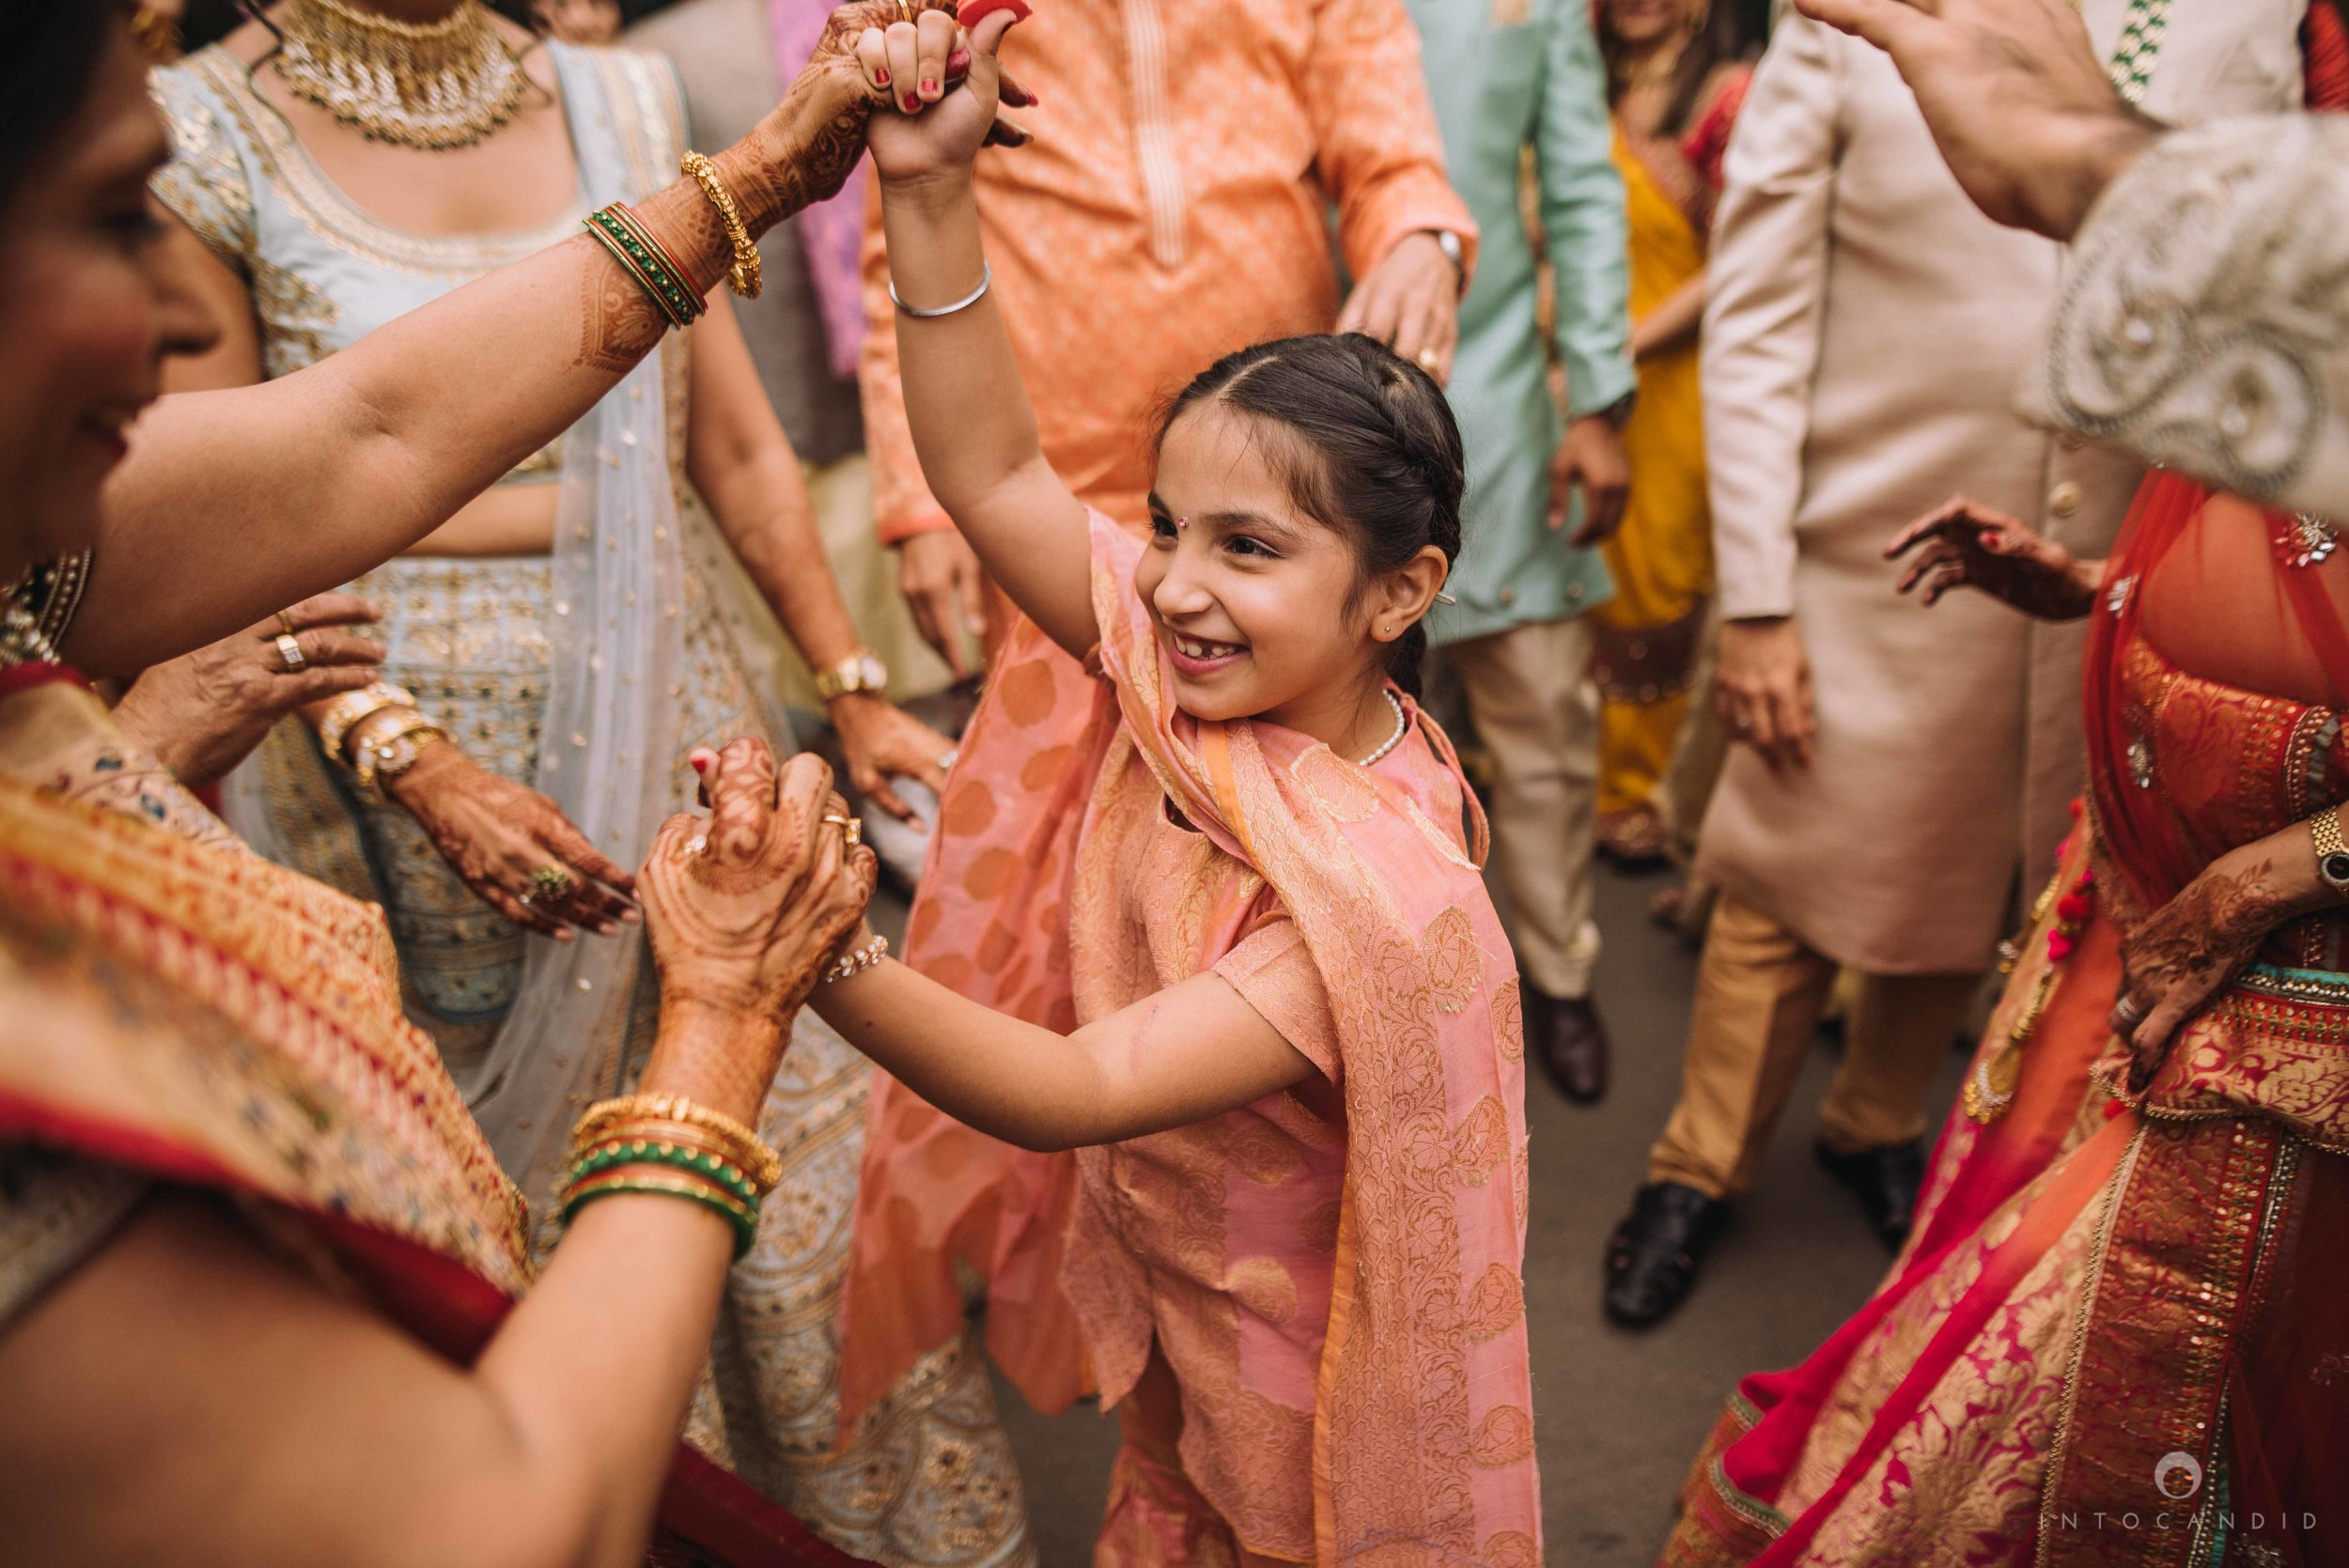 Candid_wedding_photographer_in_mumbai_28.JPG